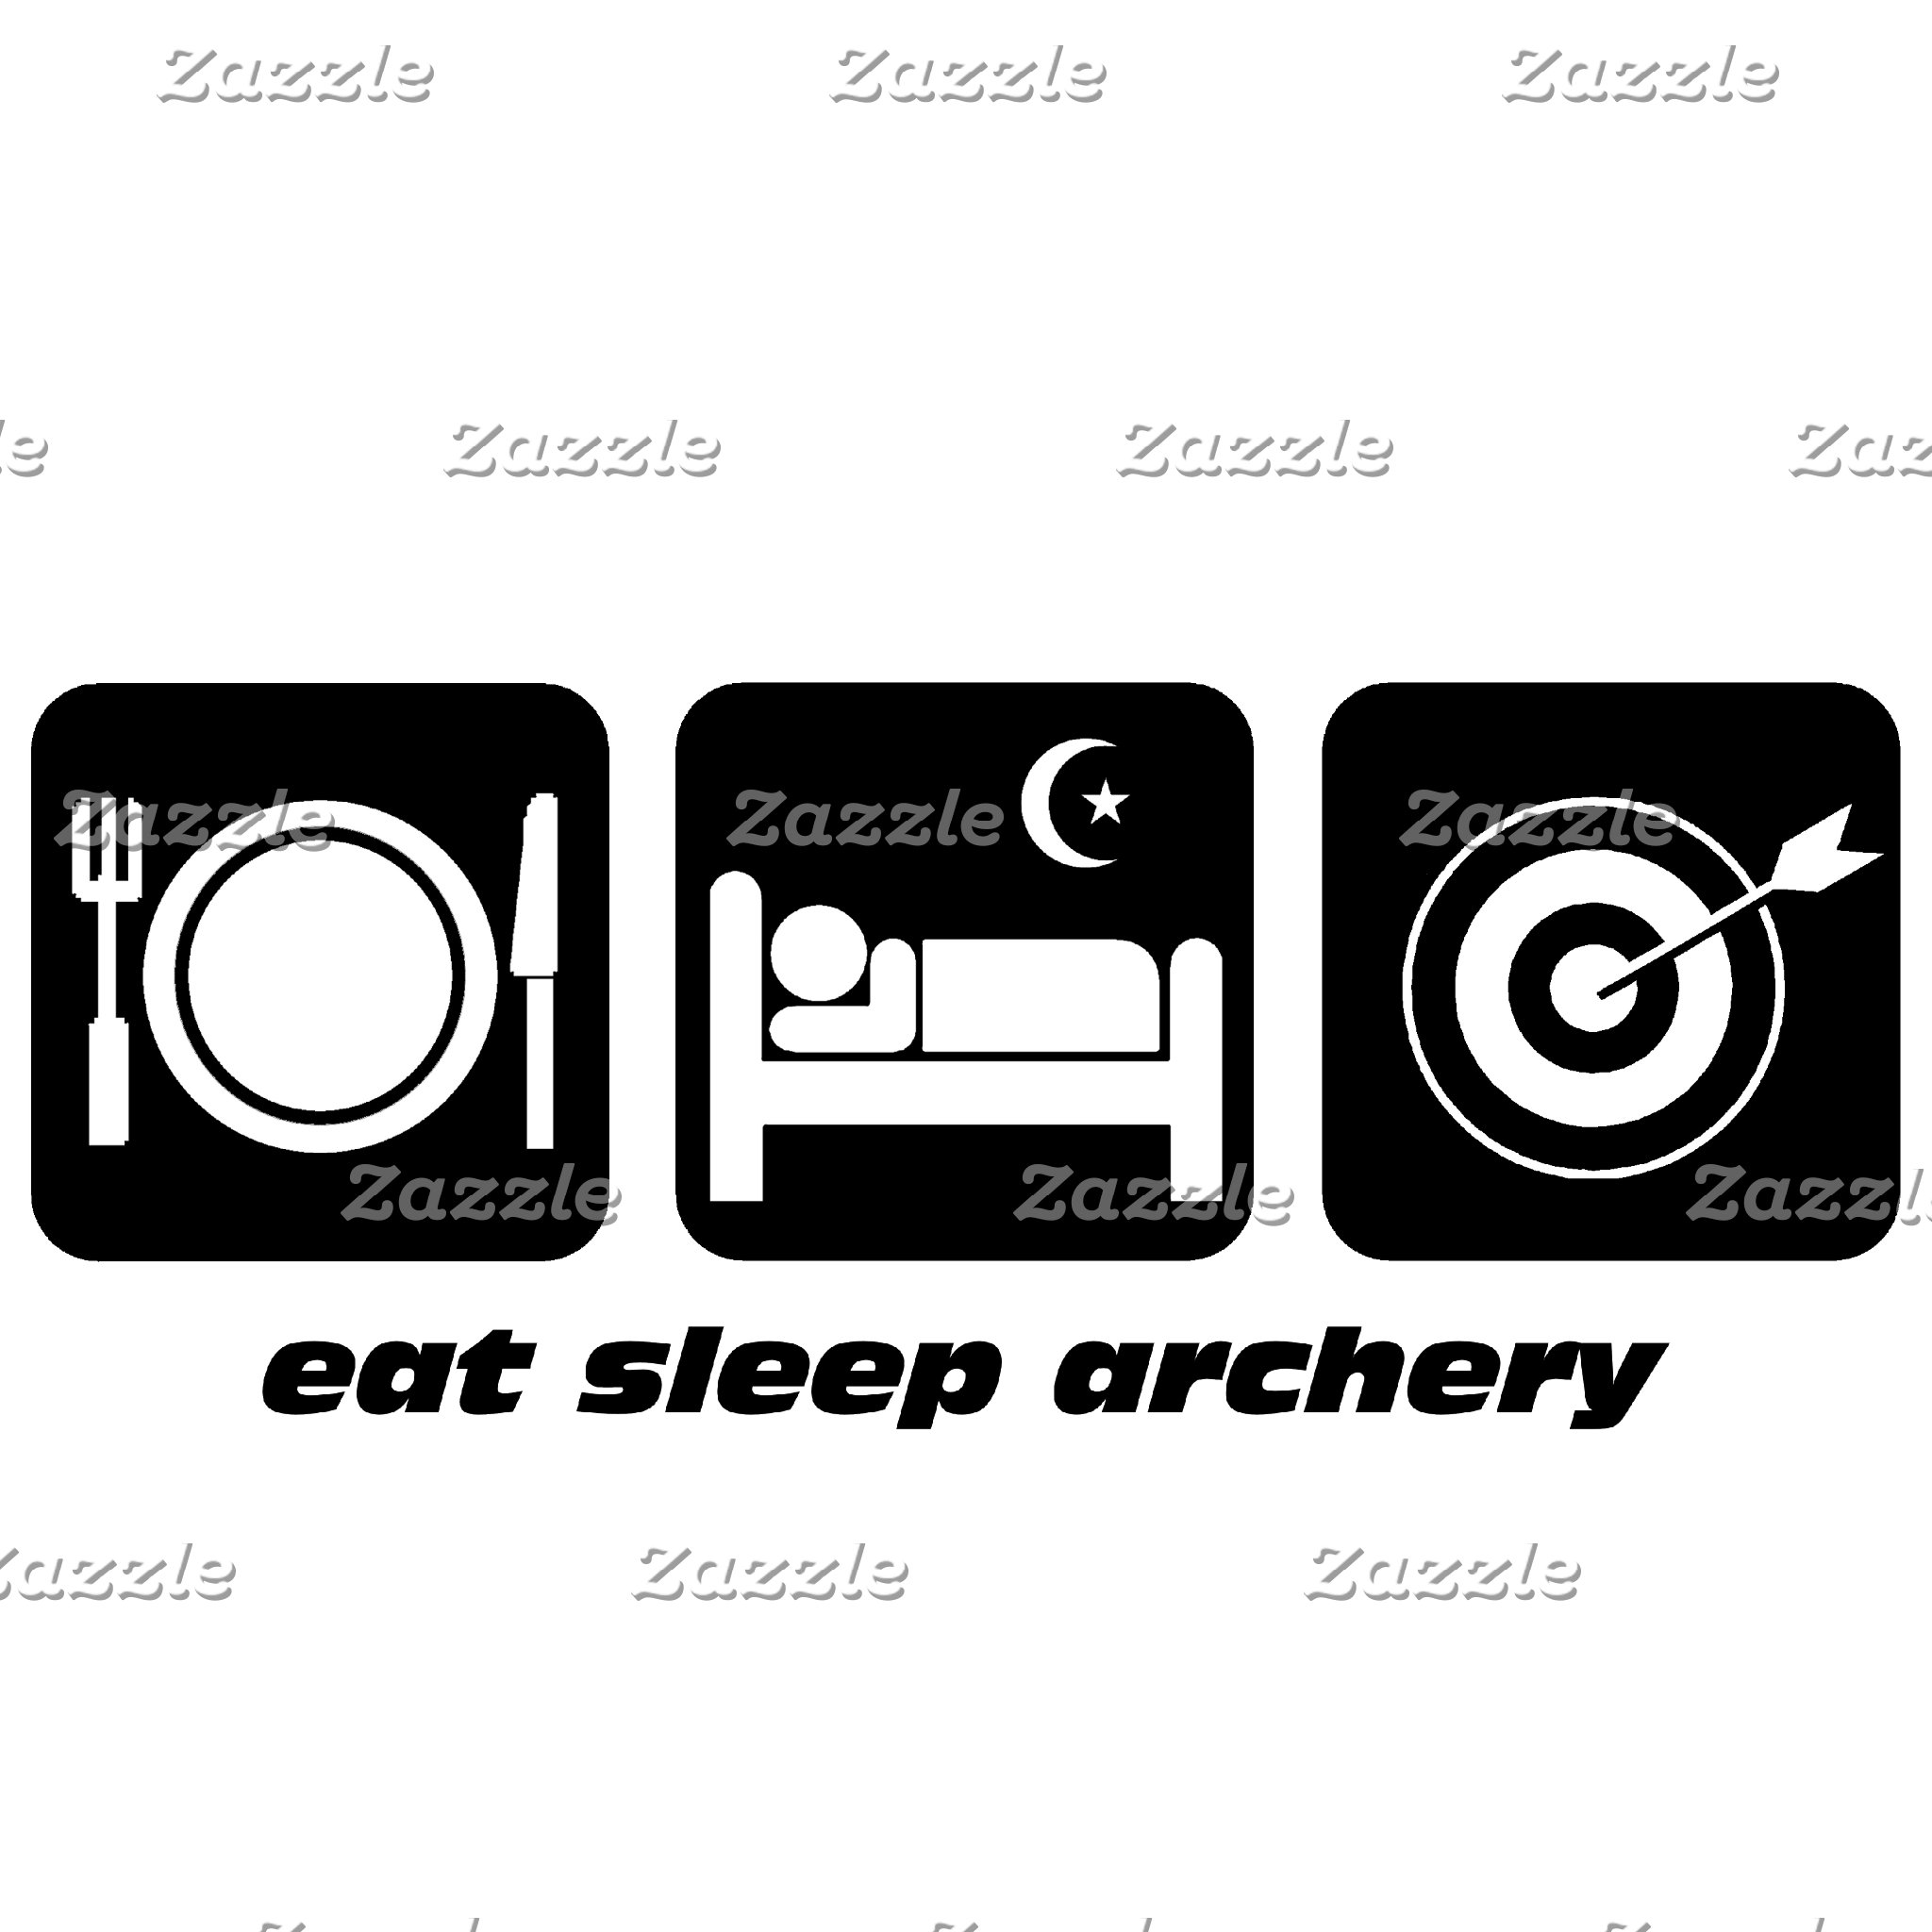 eat sleep archery